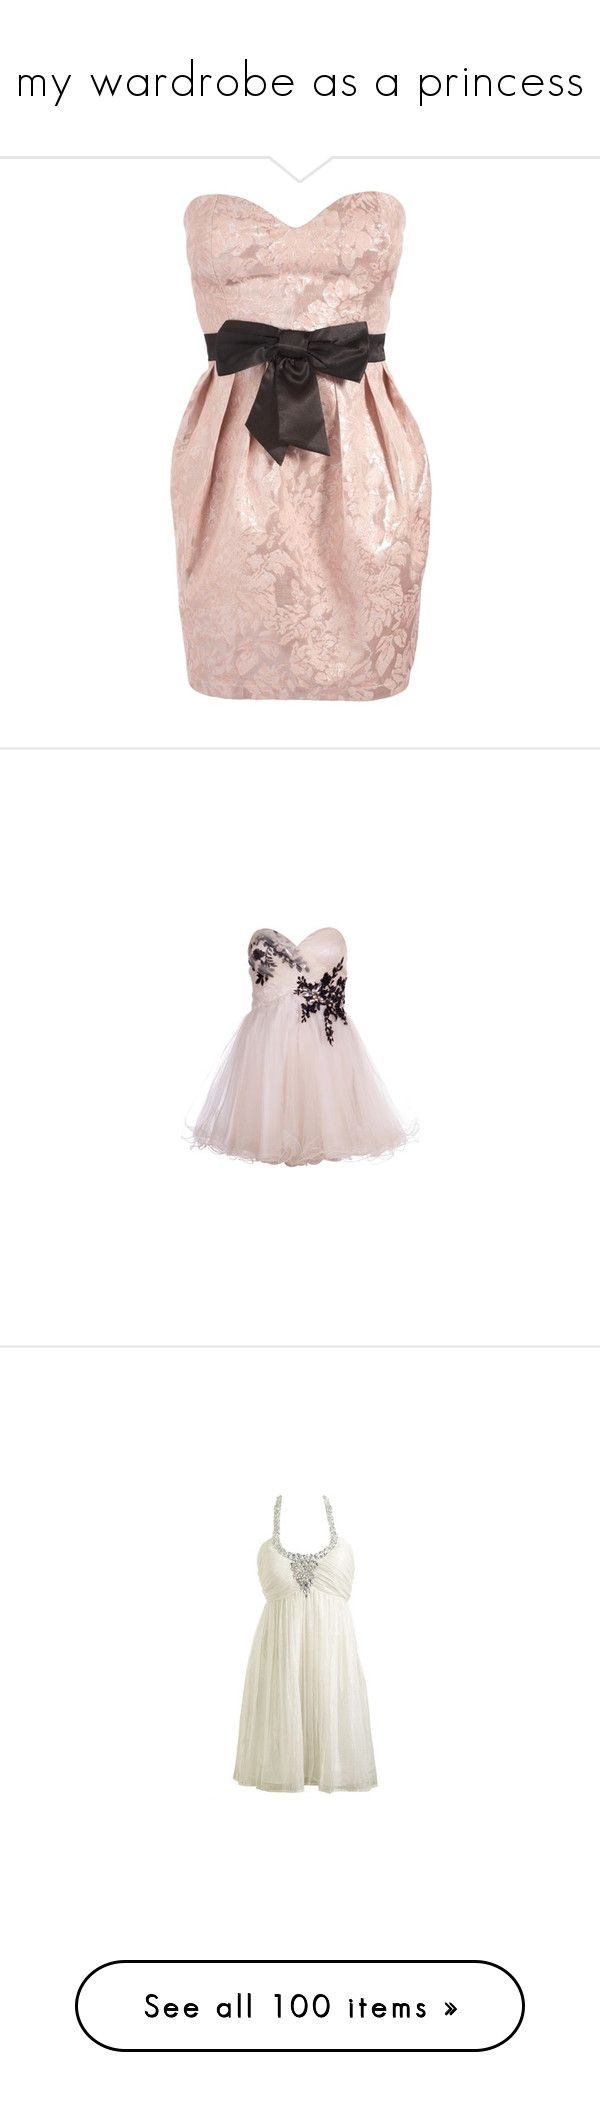 """♥ my wardrobe as a princess ♥"" by amyila ❤ liked on Polyvore featuring dresses, vestidos, vestiti, short dresses, women, short strapless dresses, pink mini dress, bandeau dress, exposed zipper dress and short cream dress"